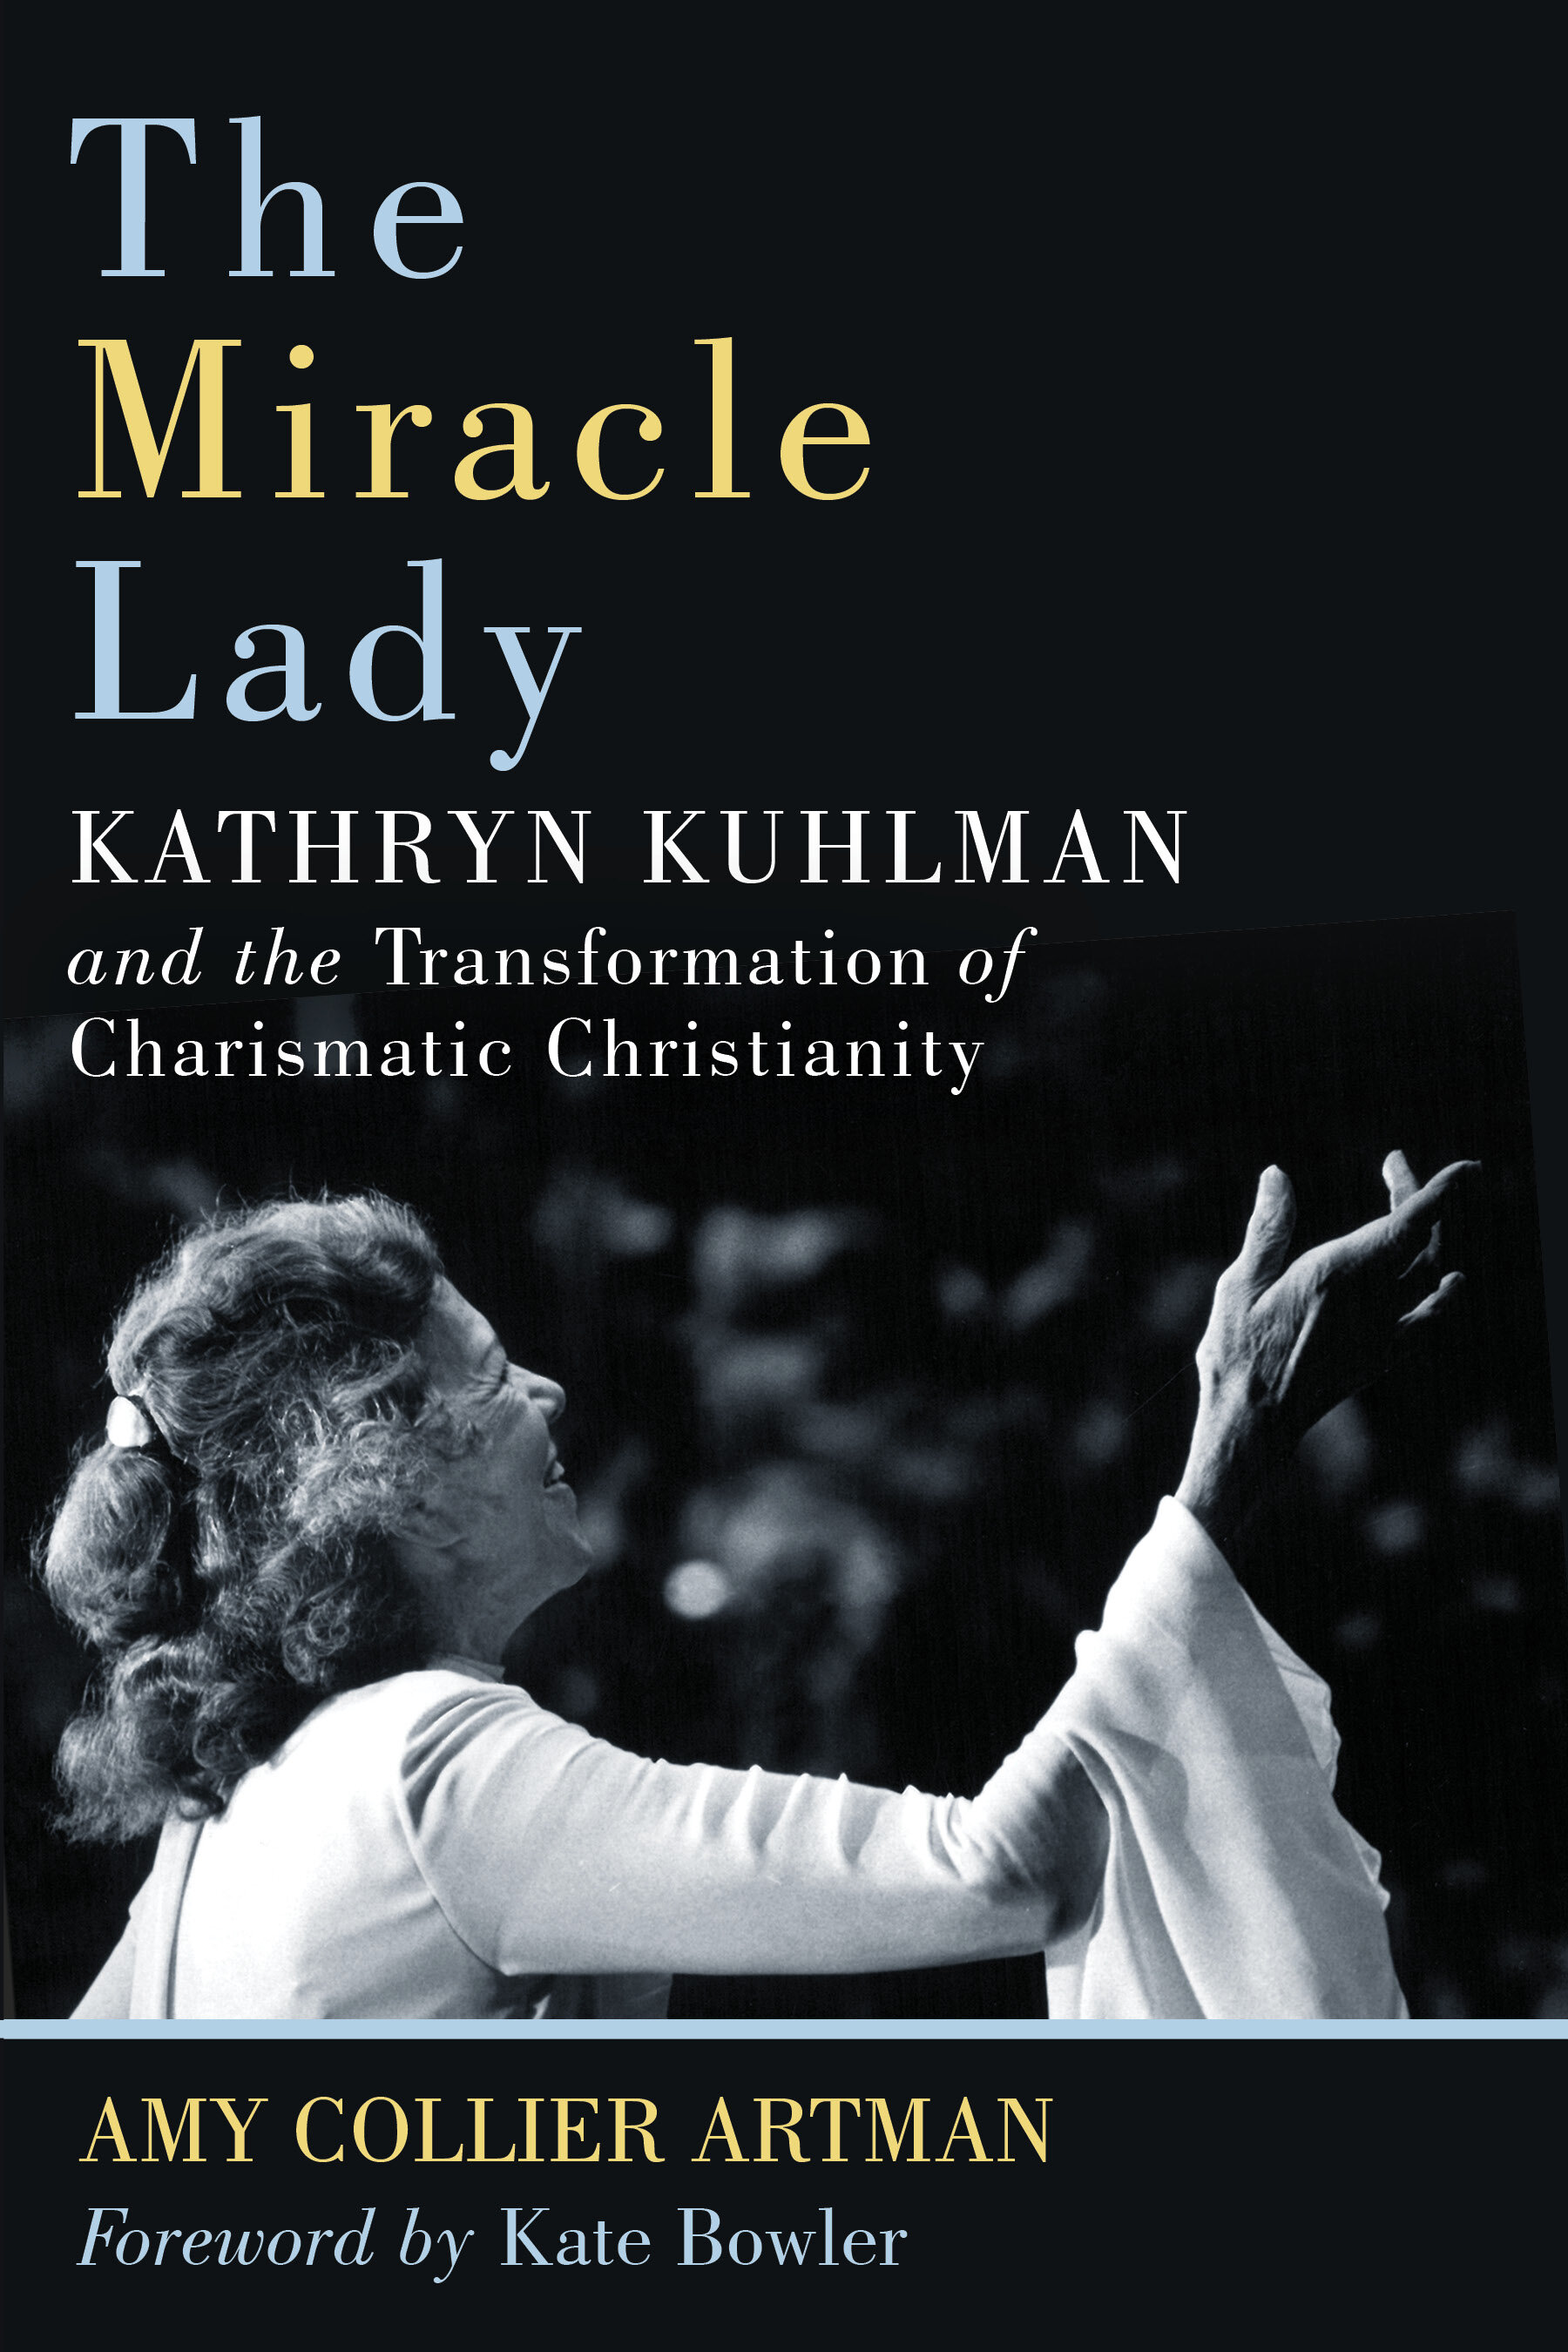 The Miracle Lady: Kathryn Kuhlman and the Transformation of Charismatic Christianity (Library of Religious Biography)